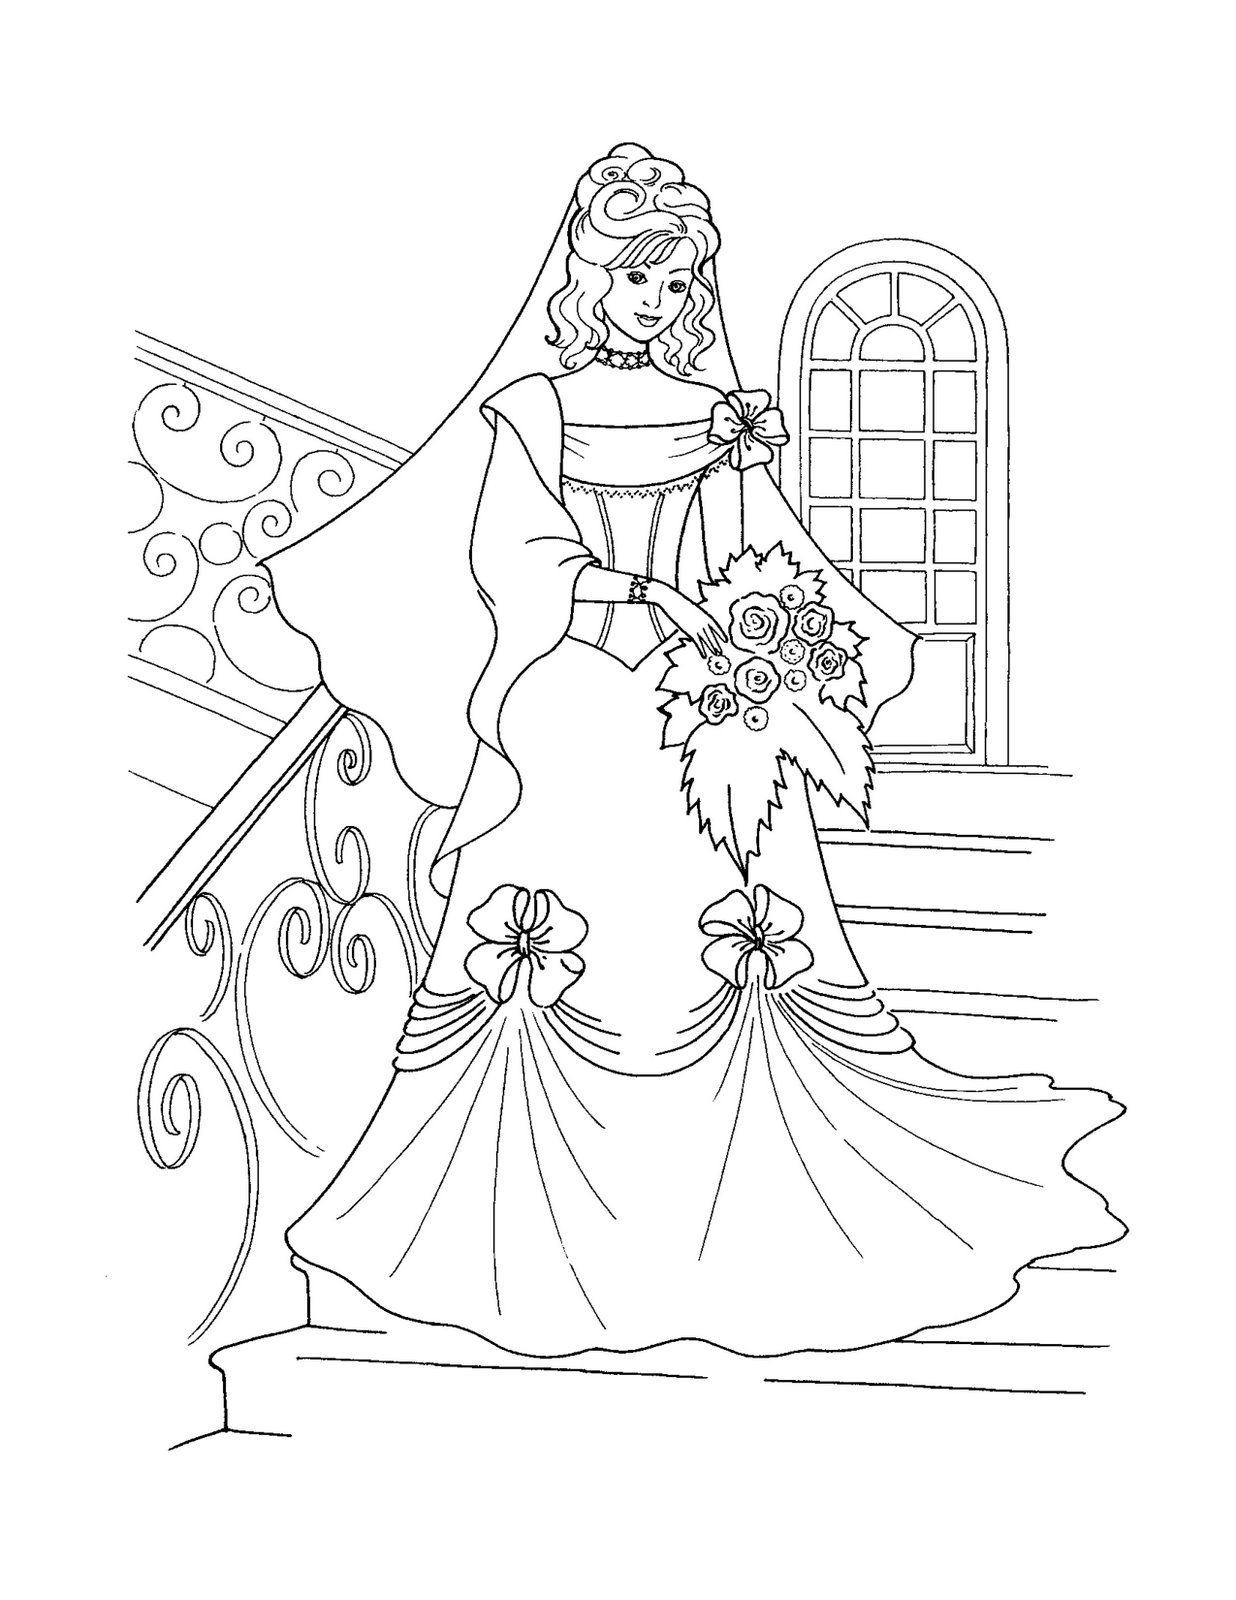 Drawn princess colouring page Printable Disney Coloring Free Castle